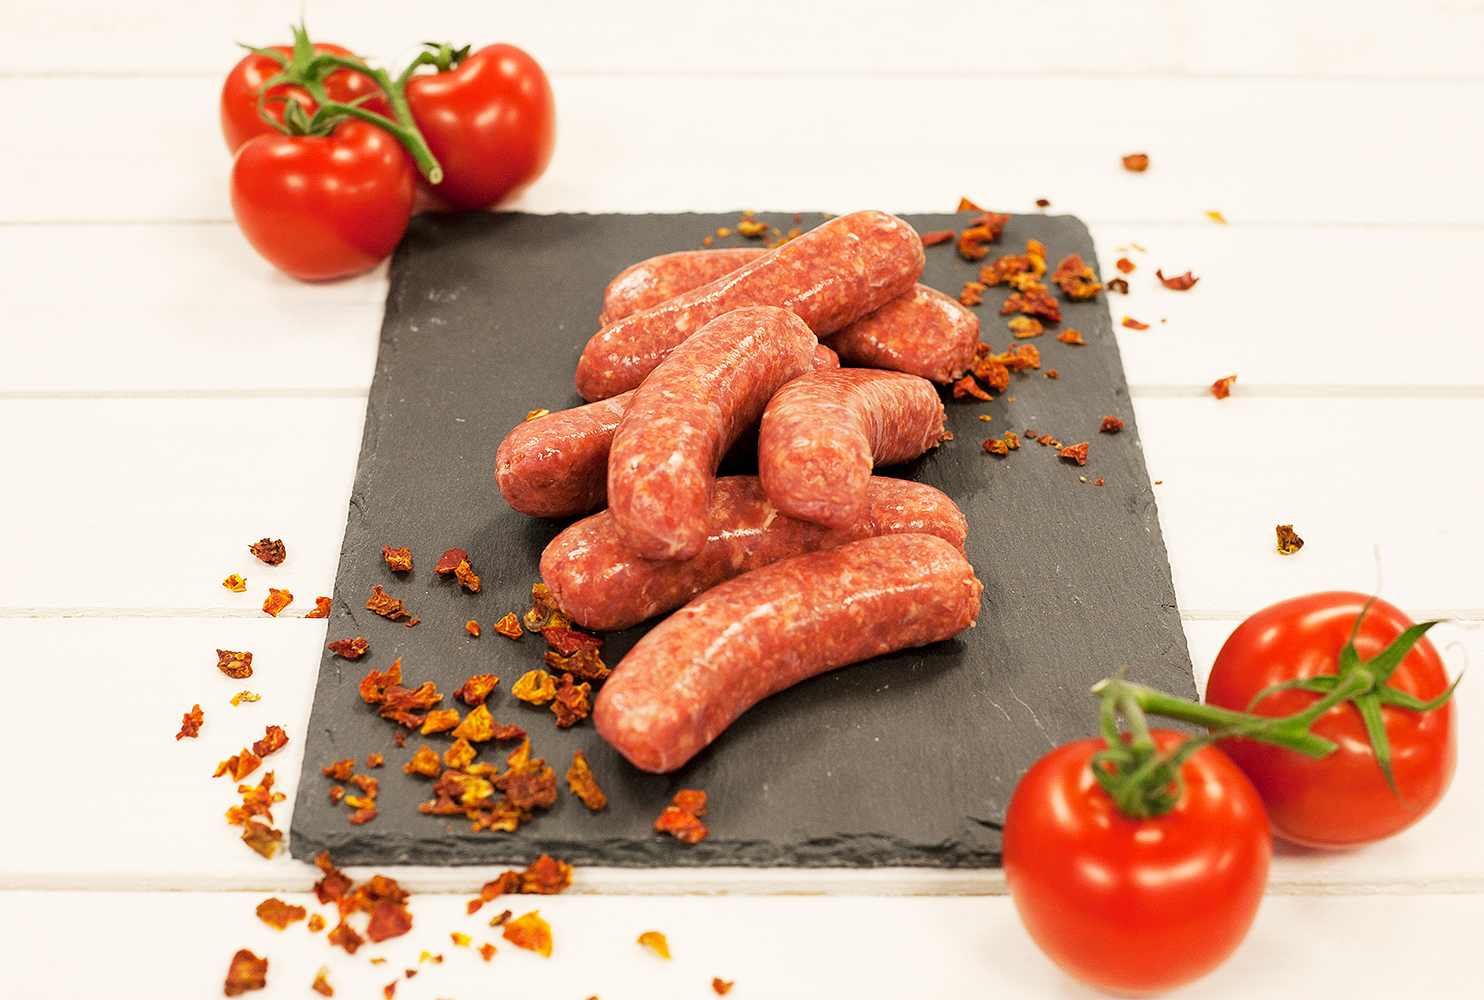 COUNTRY FAYRE TOMATO FLAVOUR & TOMATO PIECES SAUSAGE MIX